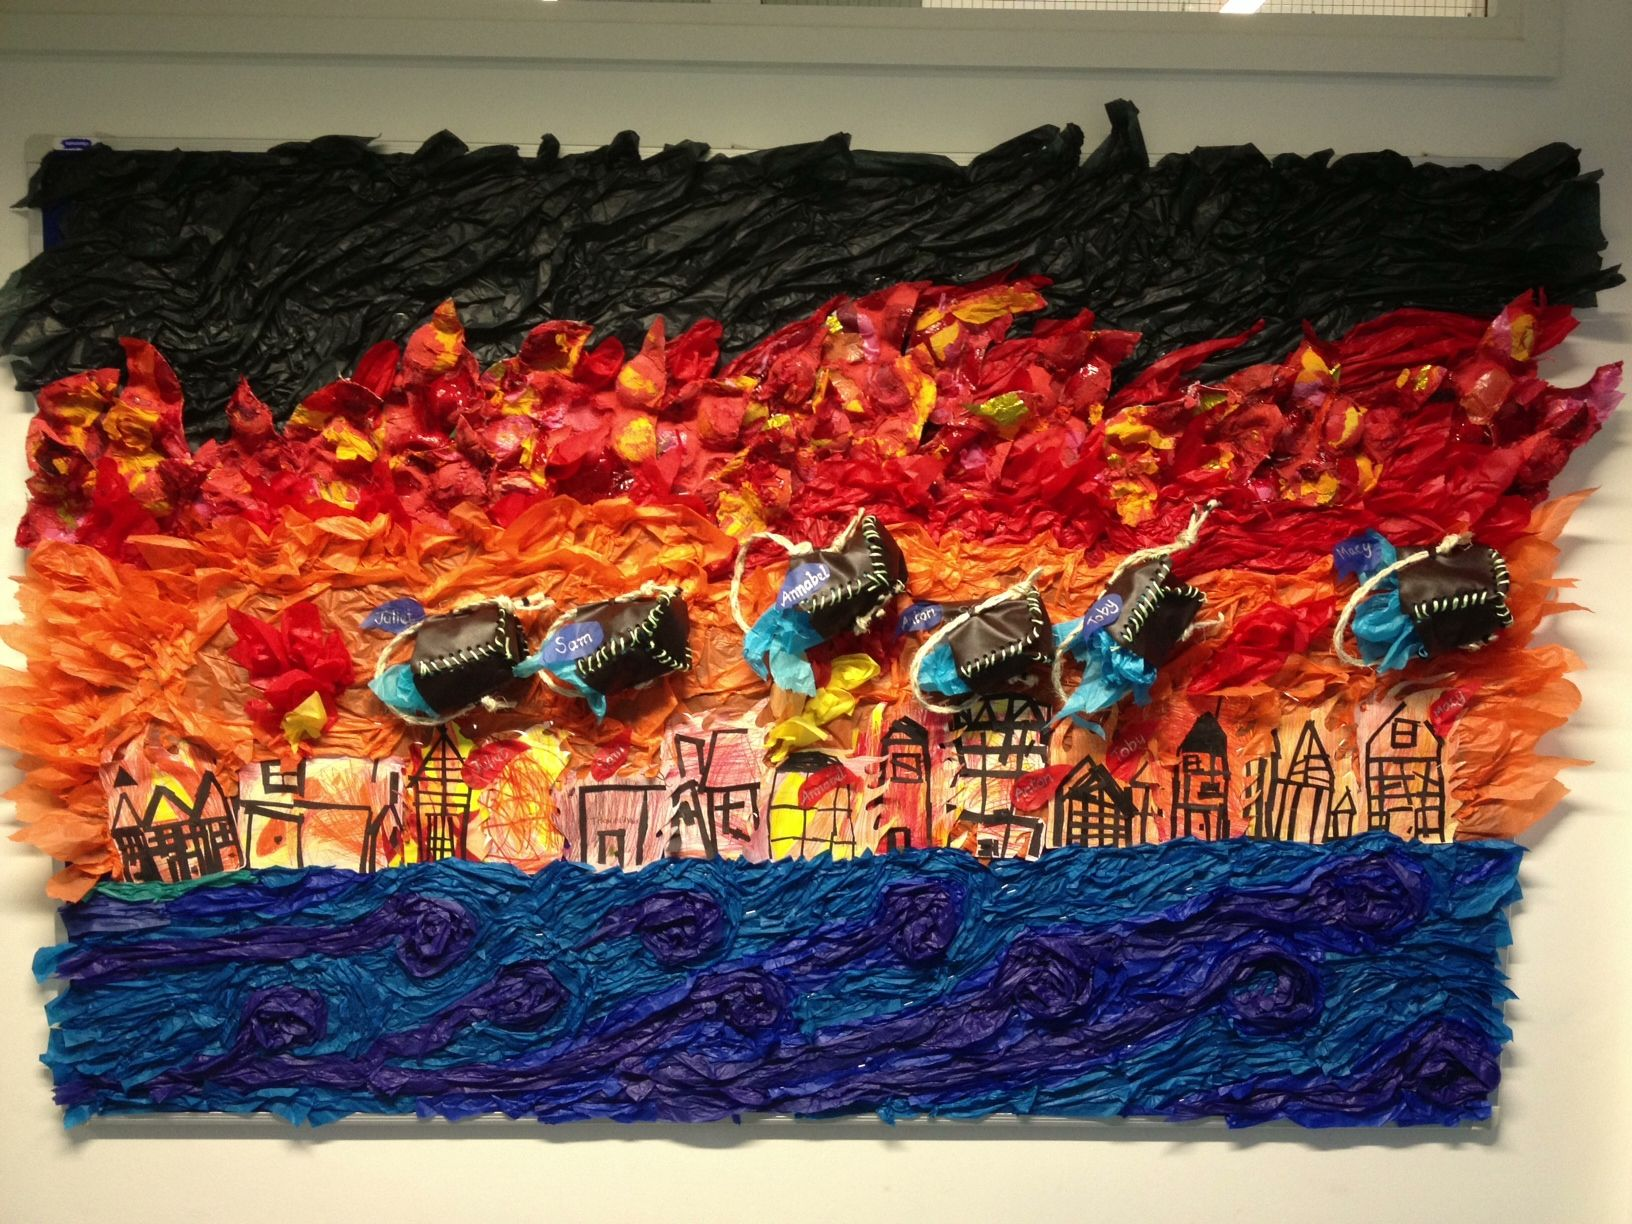 Great Fire Of London Wall Mural 2mx1 6m Made By Kids At